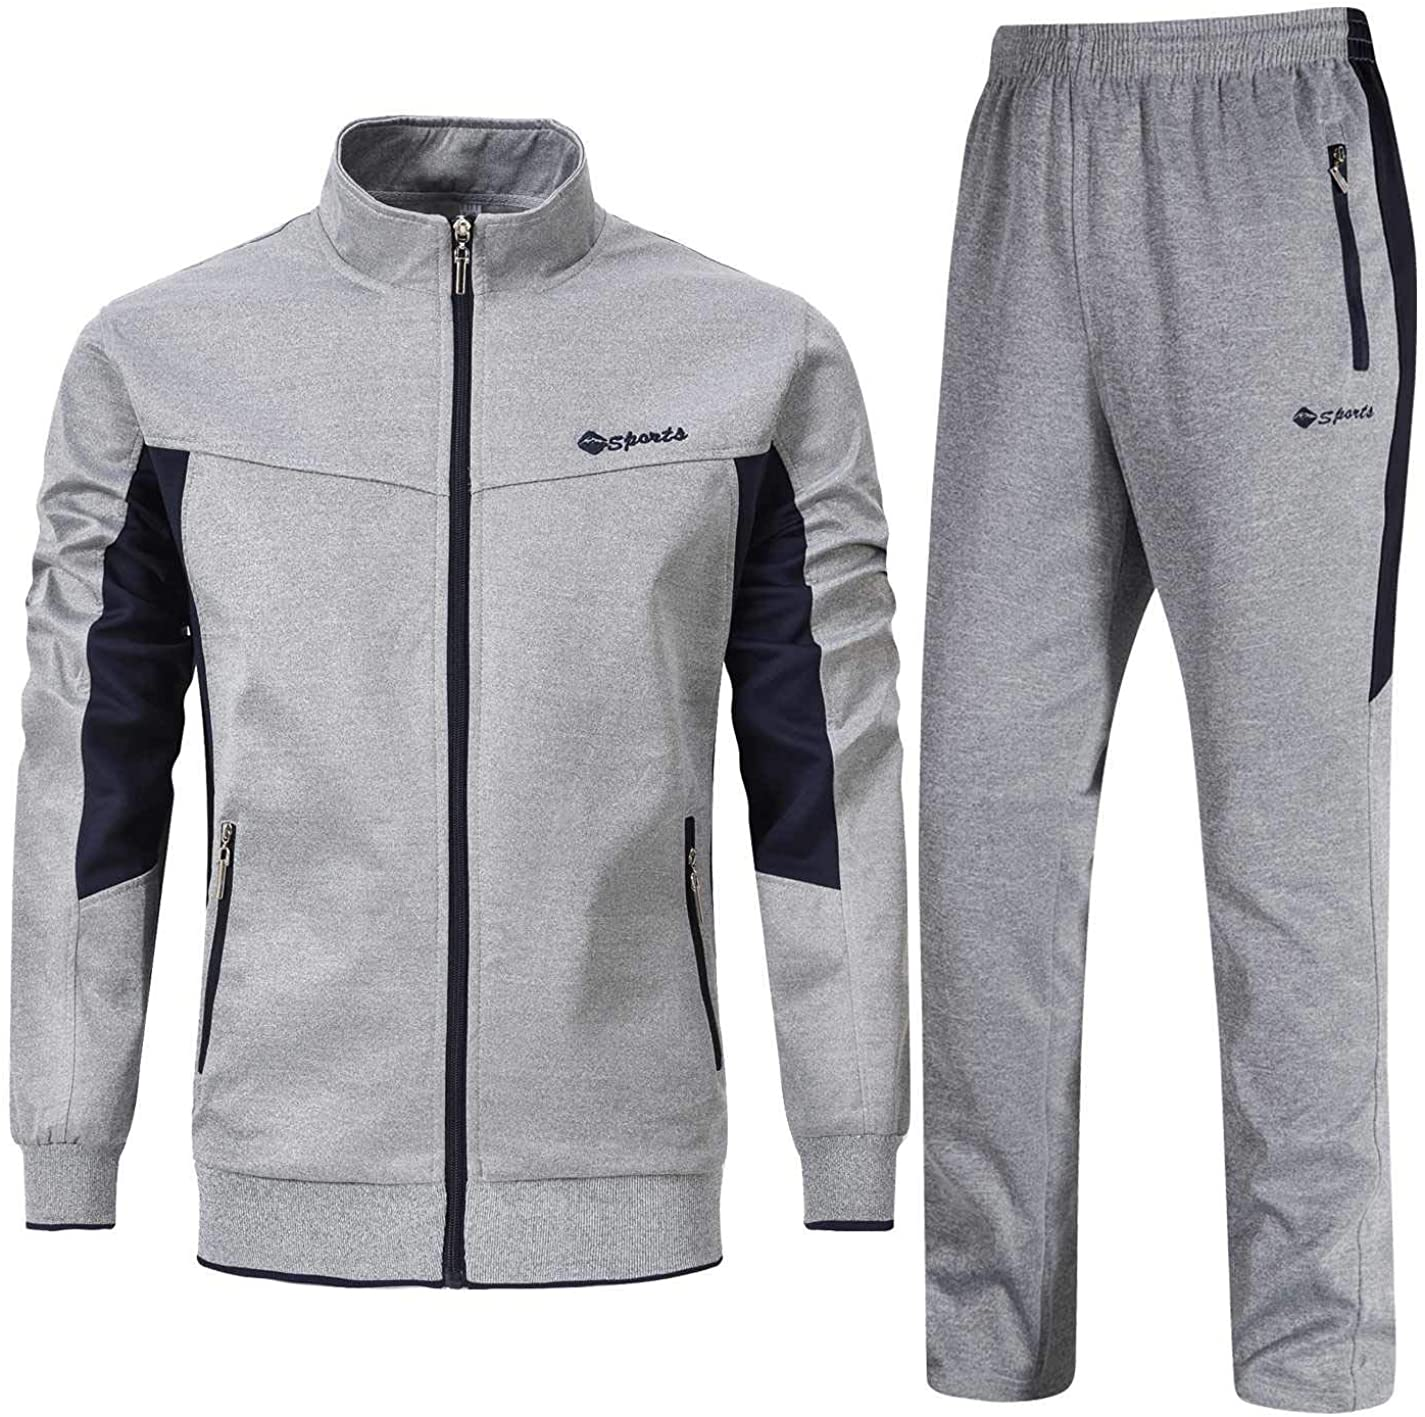 Mens Tracksuit Sweatsuit Jacket Trousers Running Sports Jogging Suits Sweatpants